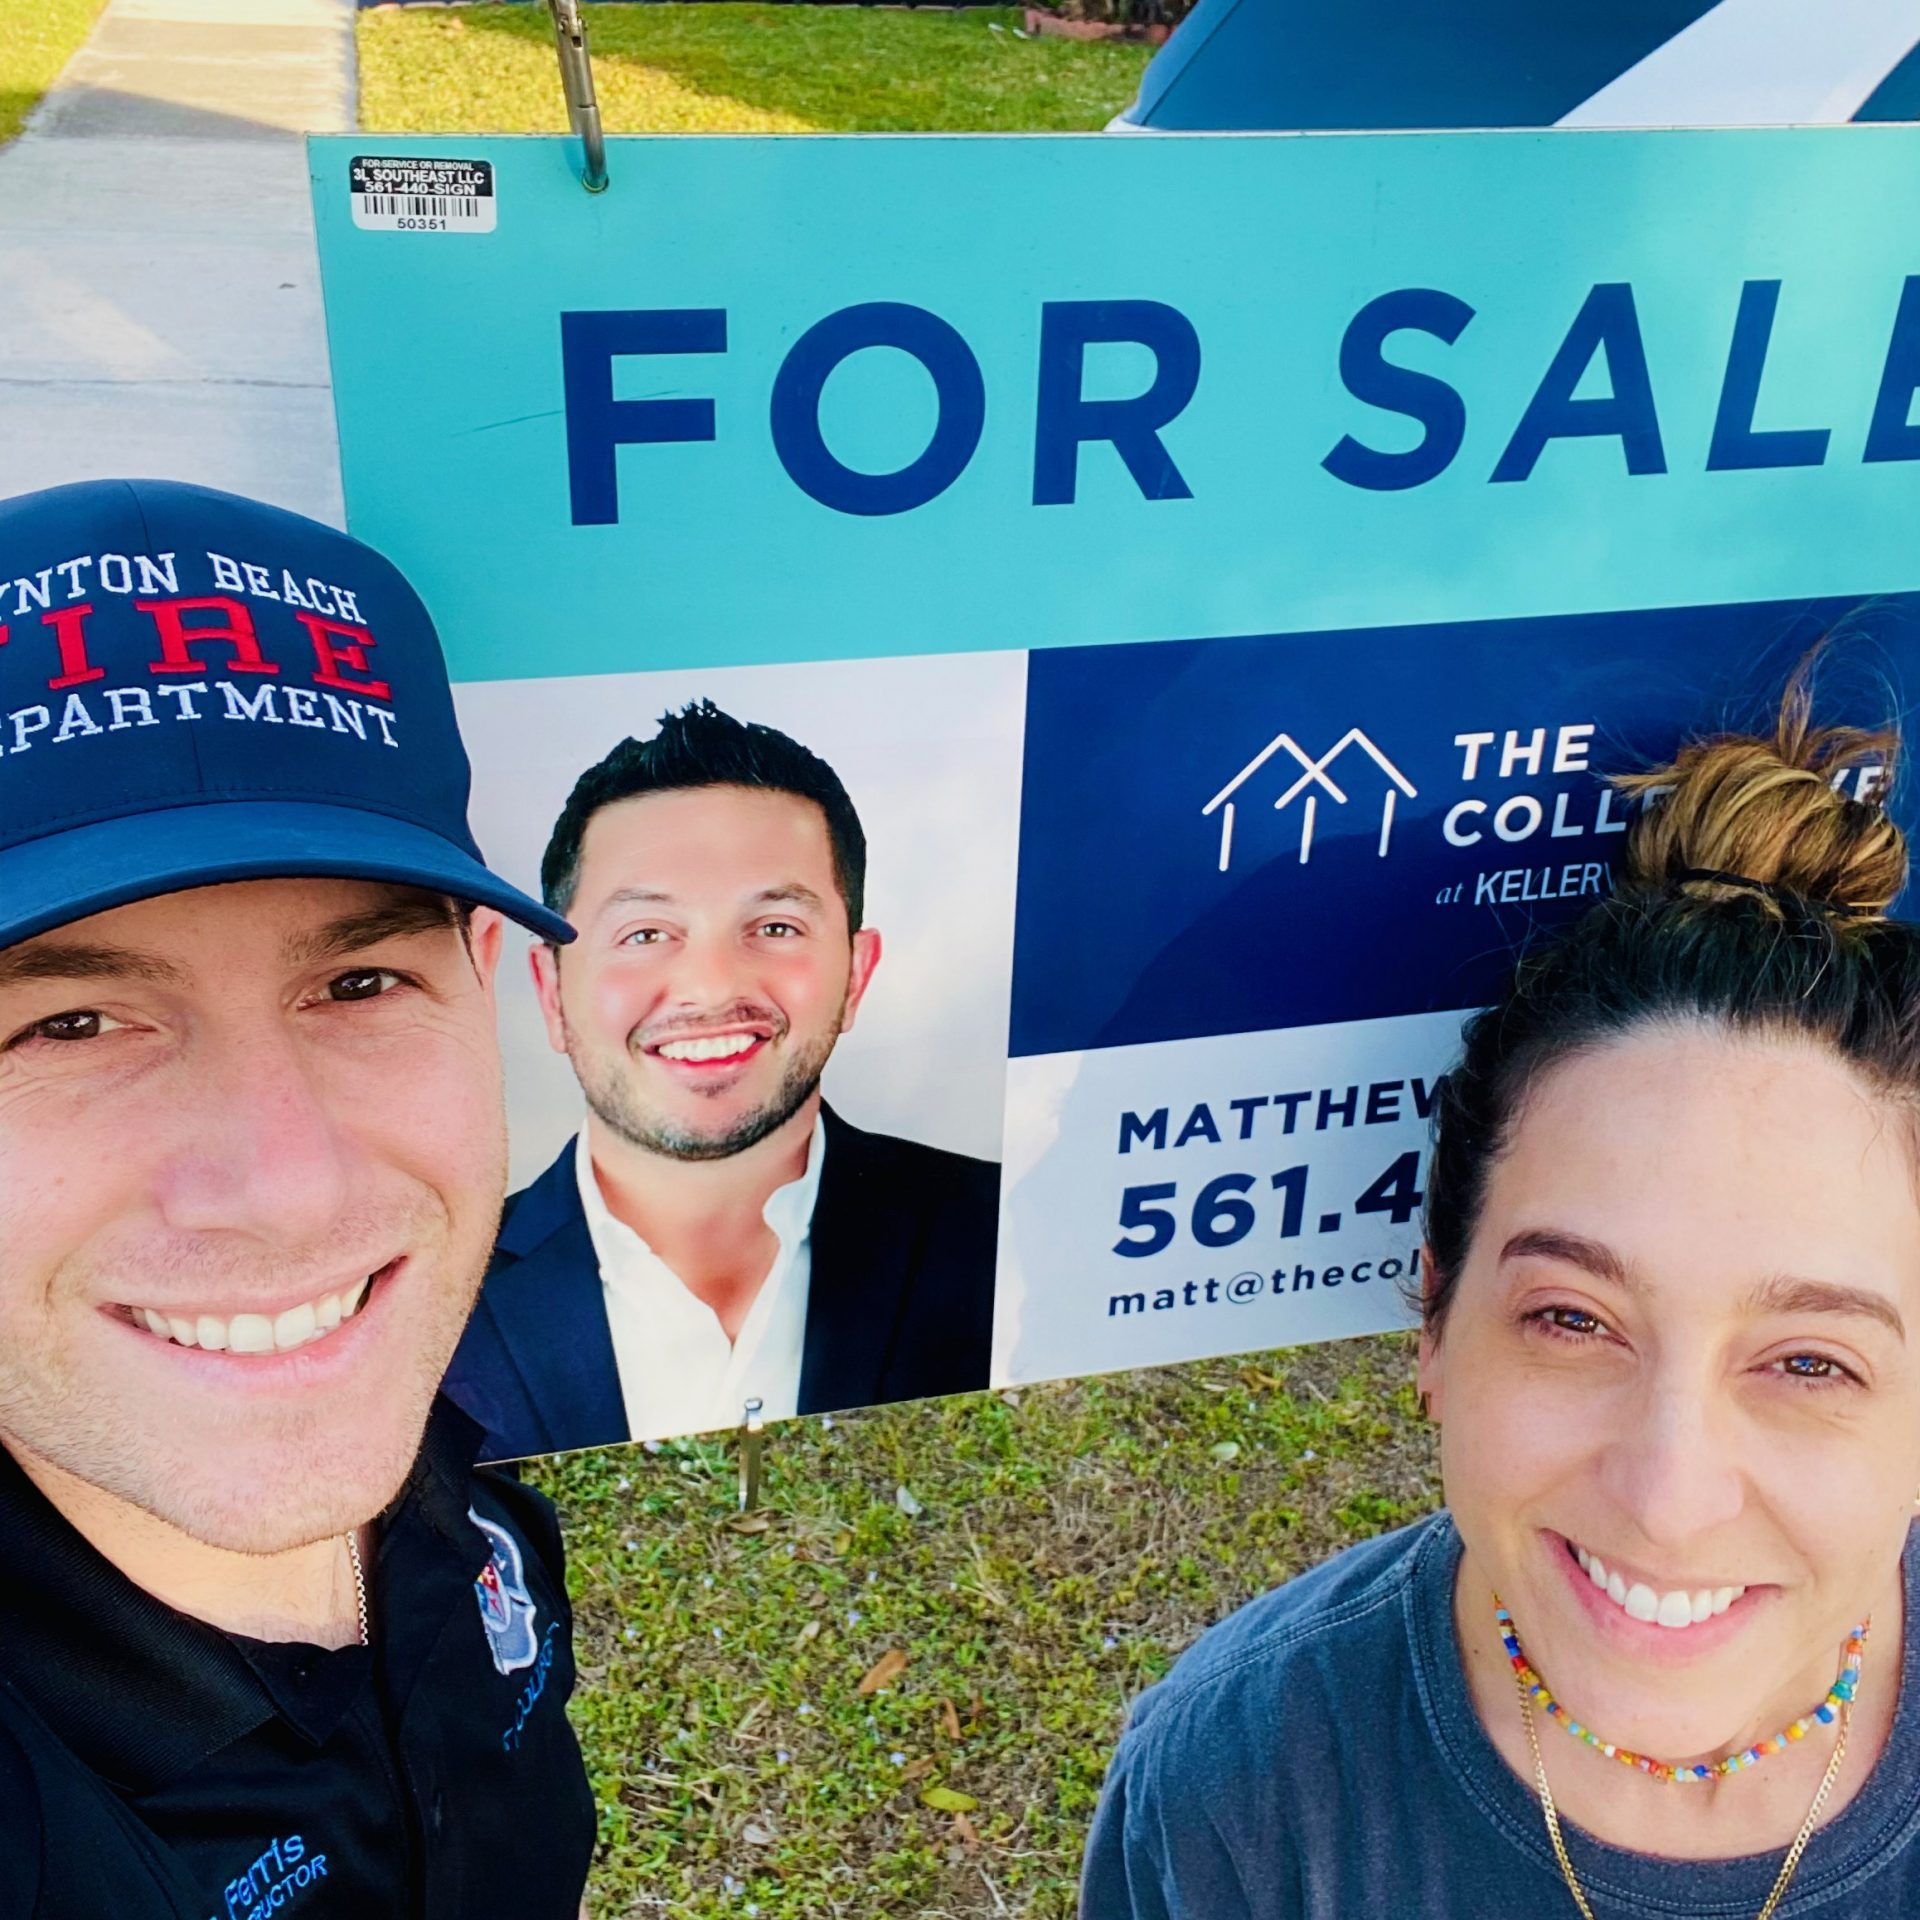 Yard sign pic with Clients